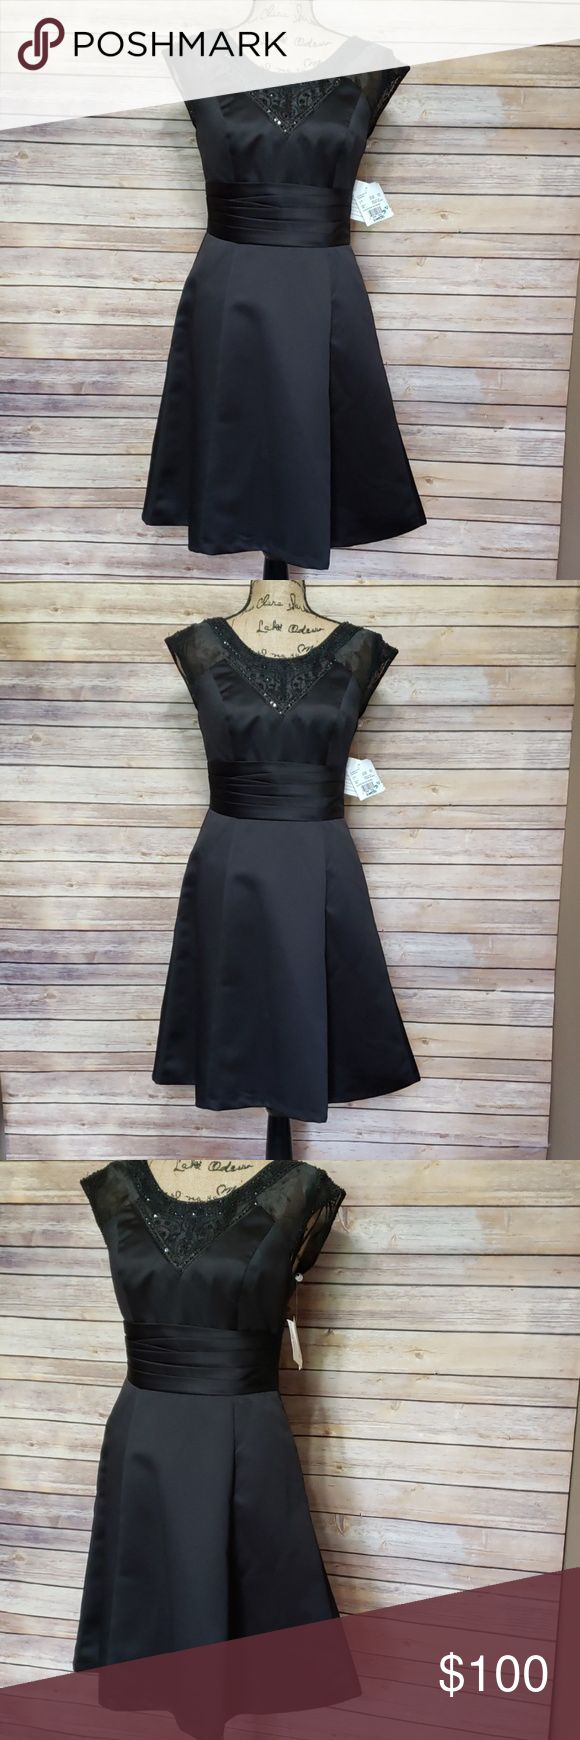 David's Bridal Satin Classic Style formal Dress This black dress is a size 4... 7